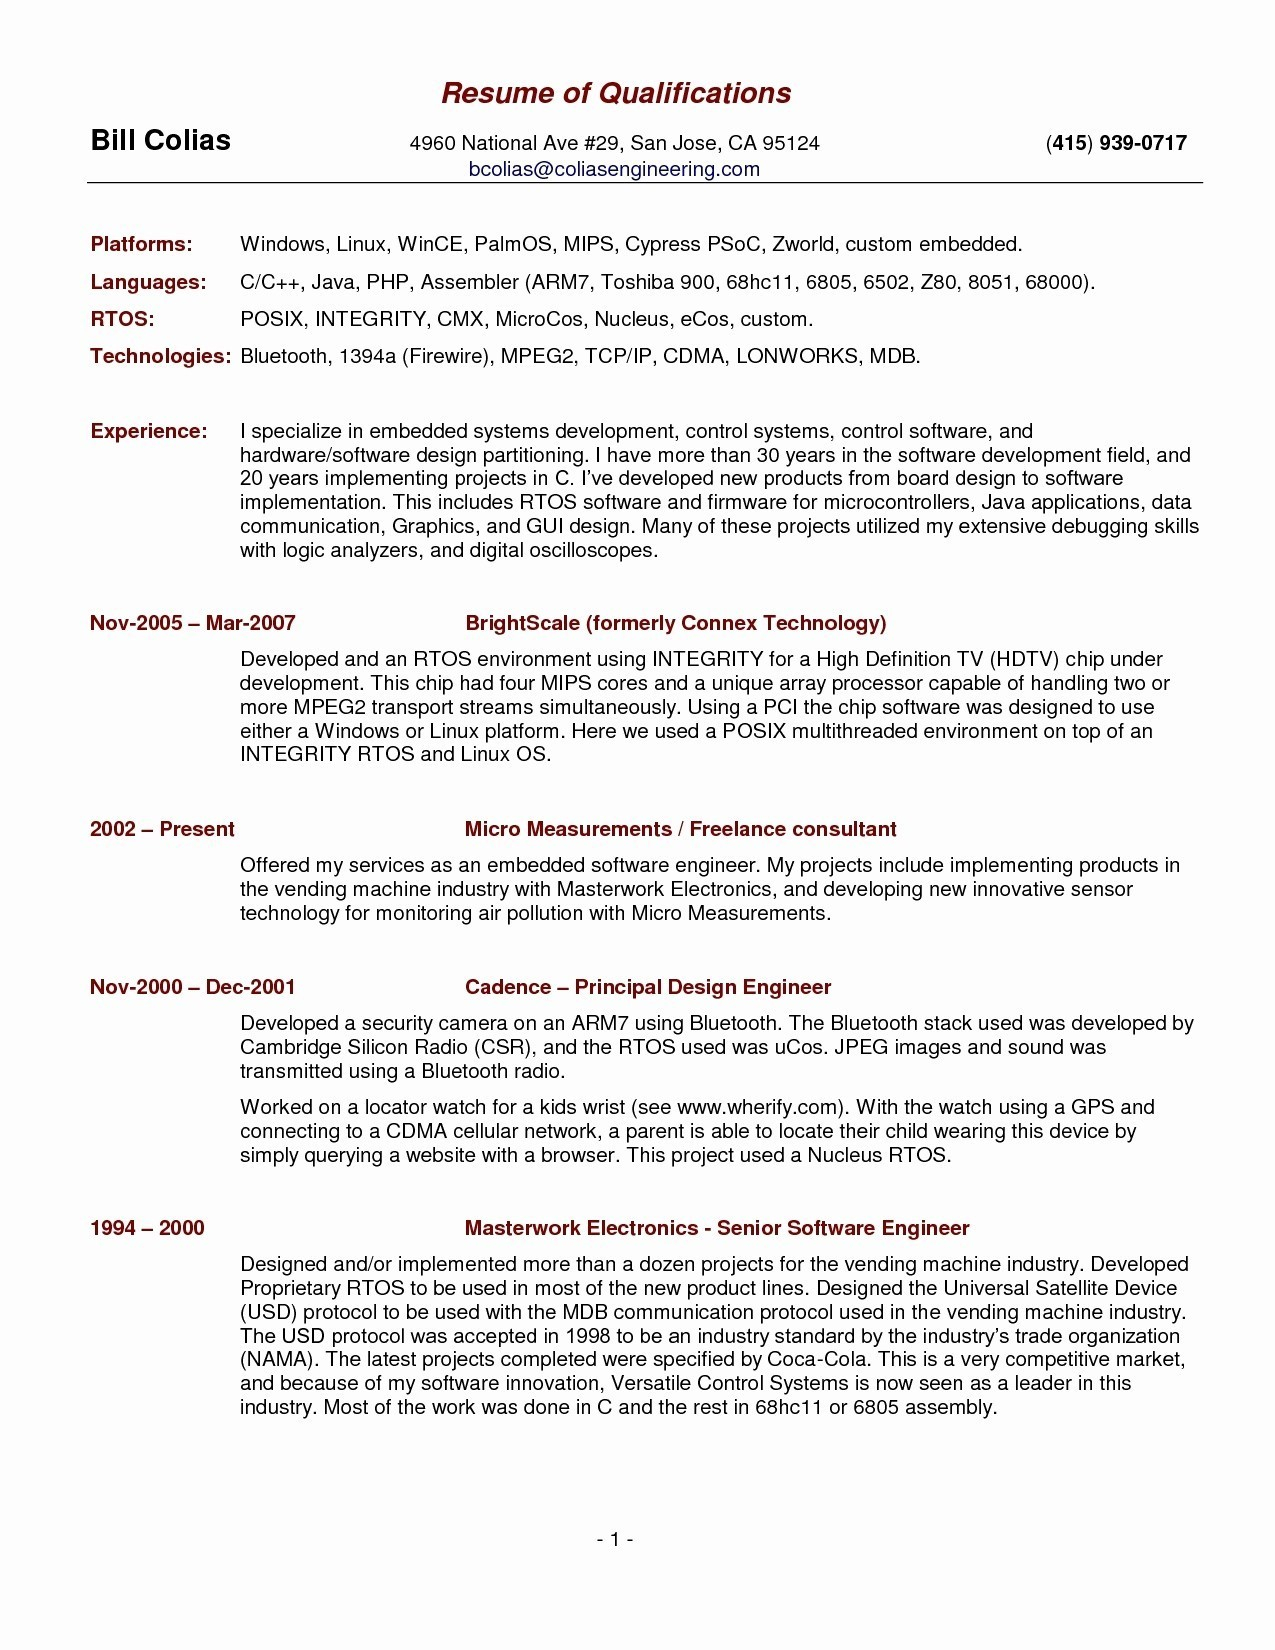 Free Letter Template Word - Resumes for Free Unique Elegant Pr Resume Template Elegant